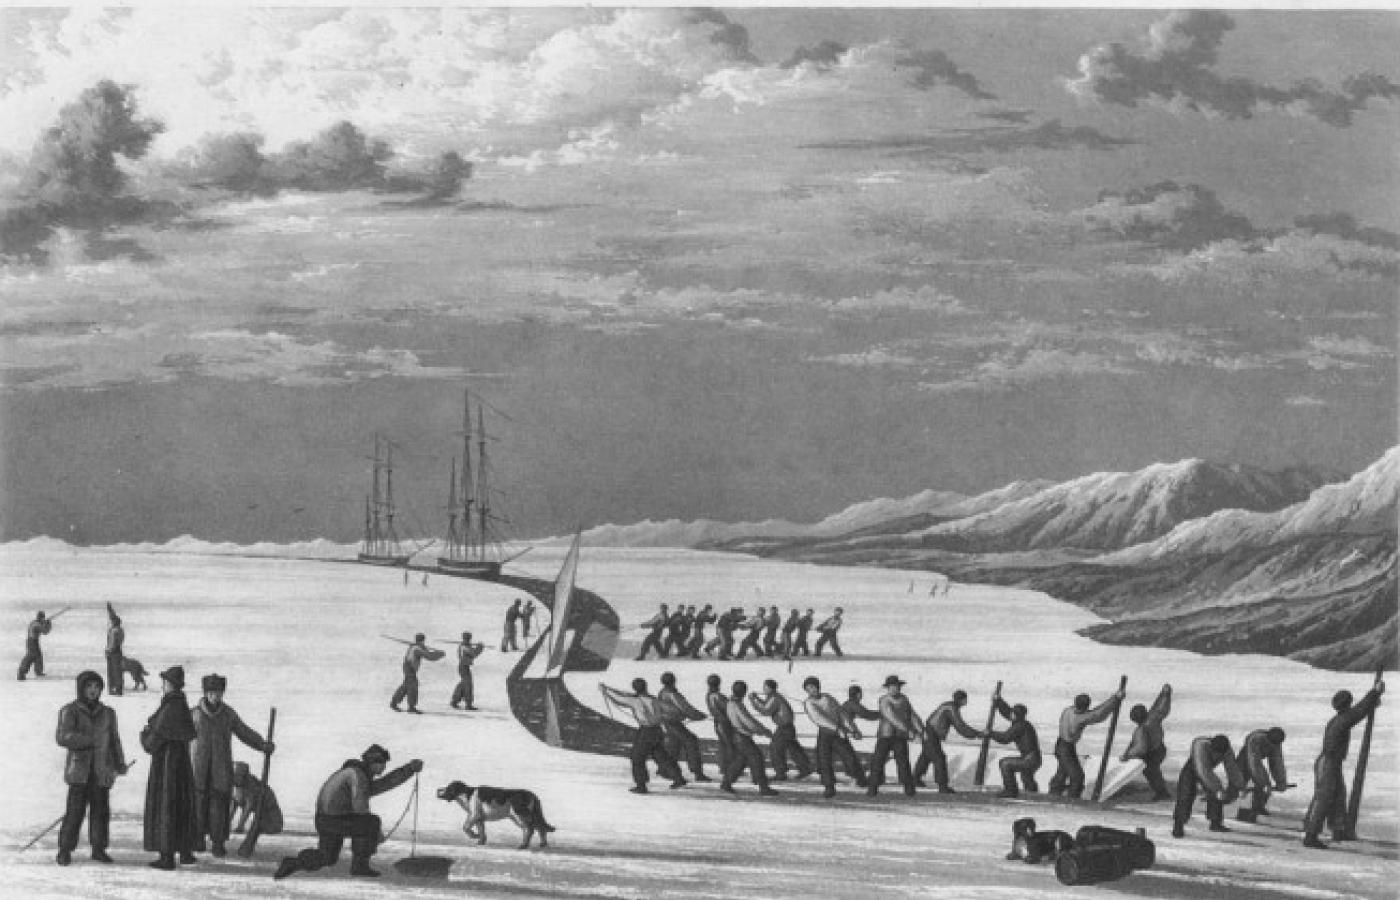 Historical illustration of Europeans in the High Arctic during winter